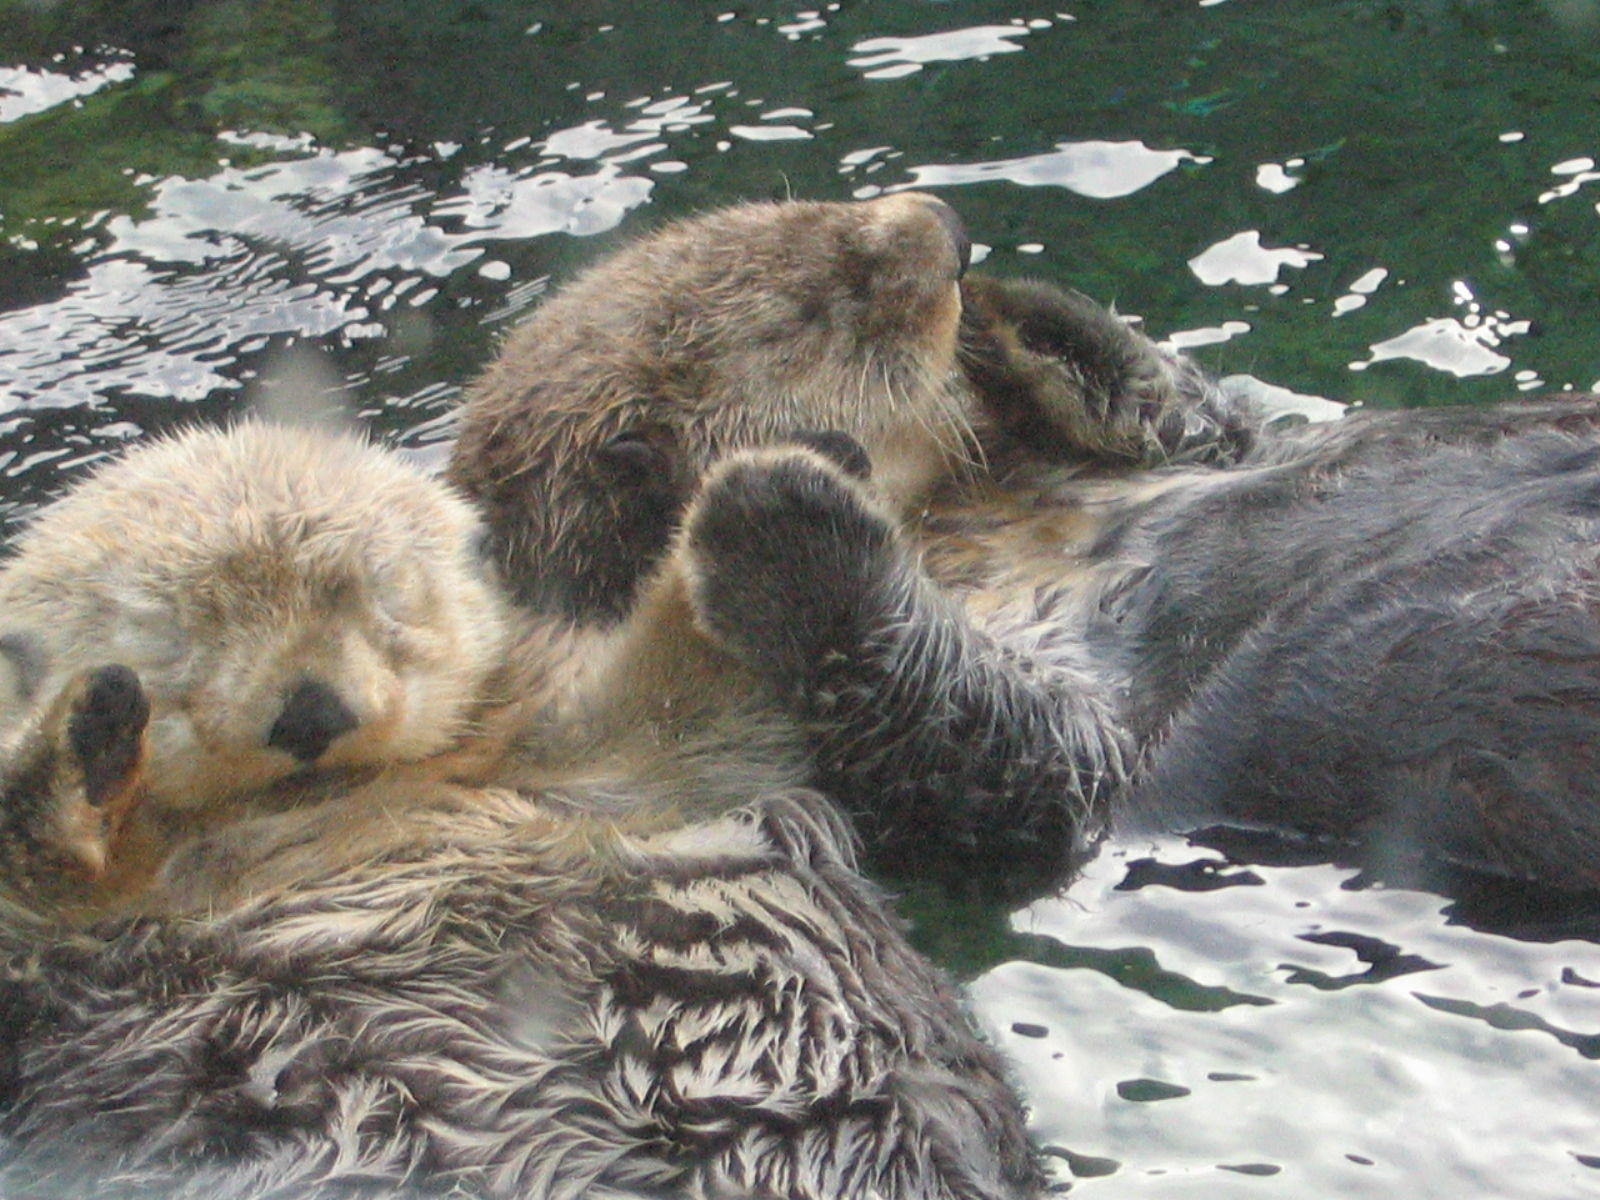 Anime Girl Holding Hands Wallpaper Image 15505 Otters Holding Hands Know Your Meme